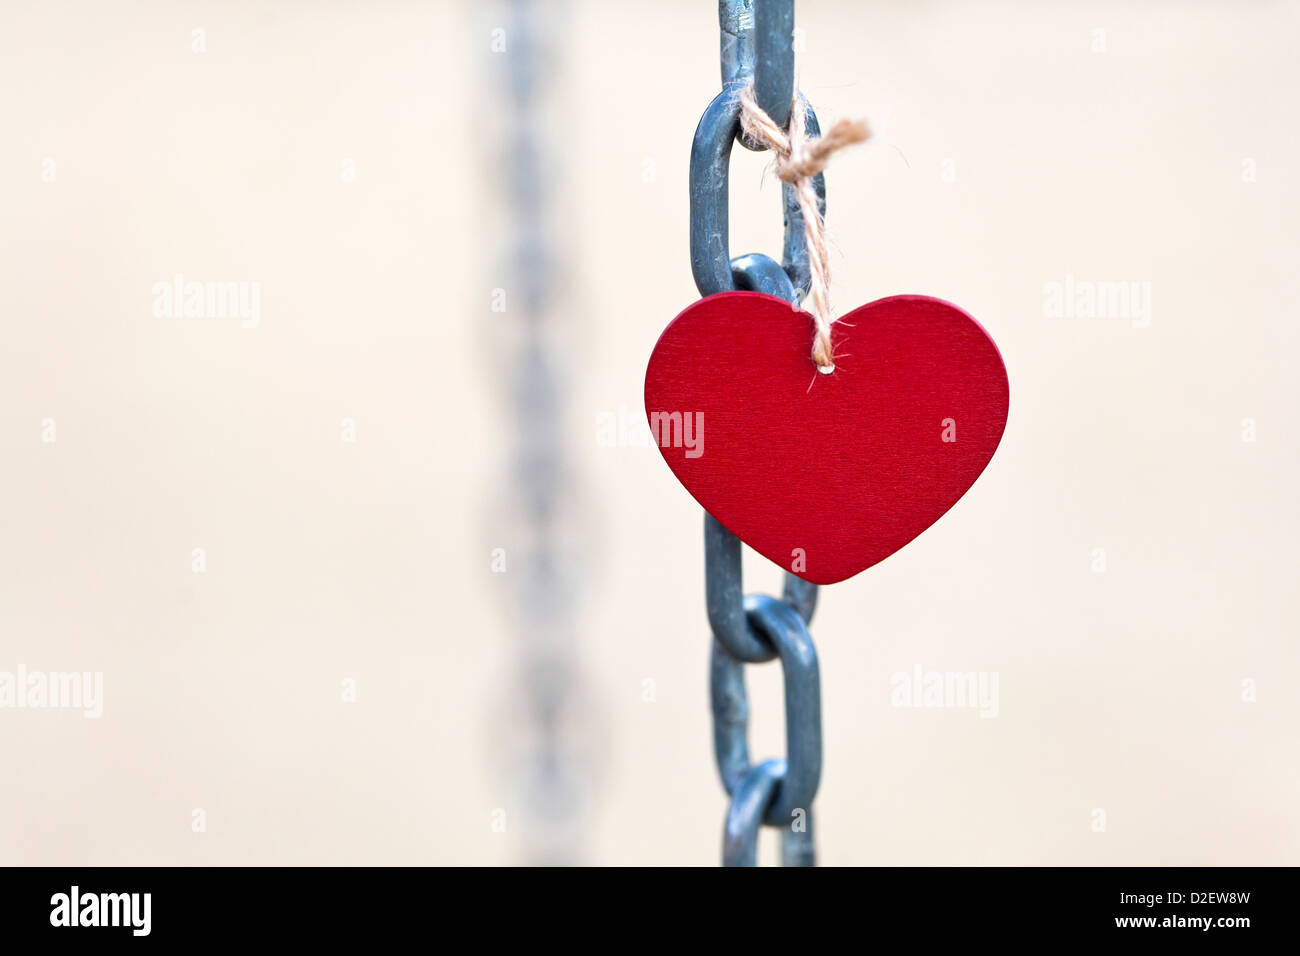 Love shape hangs in a chain. Love concept picture with copy space. Stock Photo